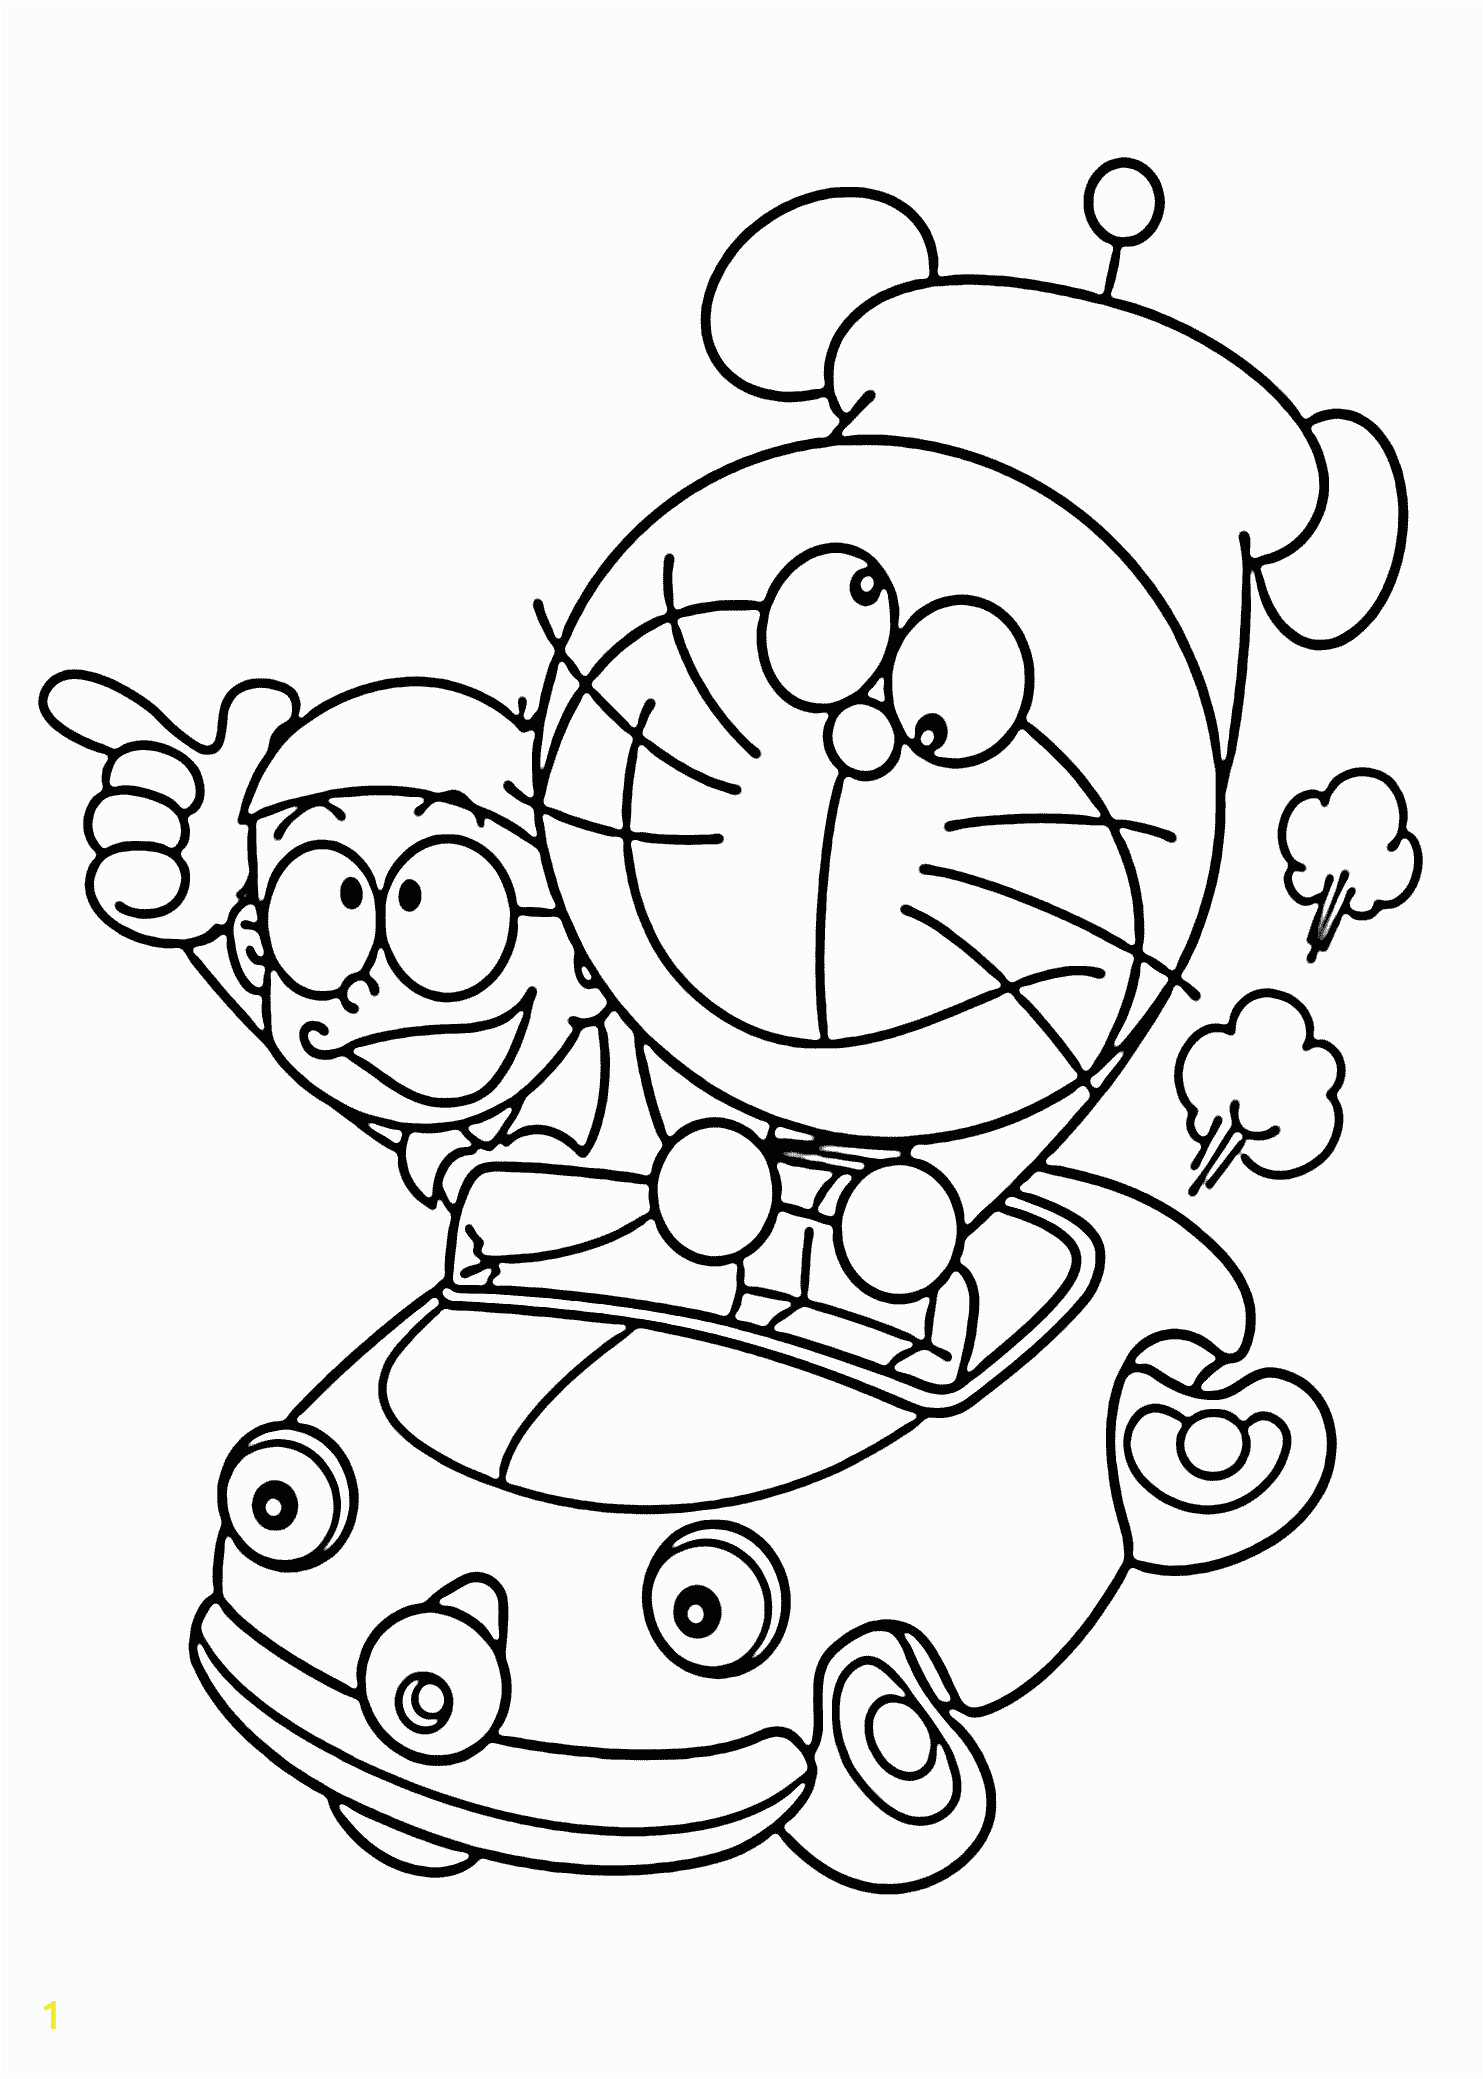 Coloring Page Doraemon and Friends Doraemon In Car Coloring Pages for Kids Printable Free